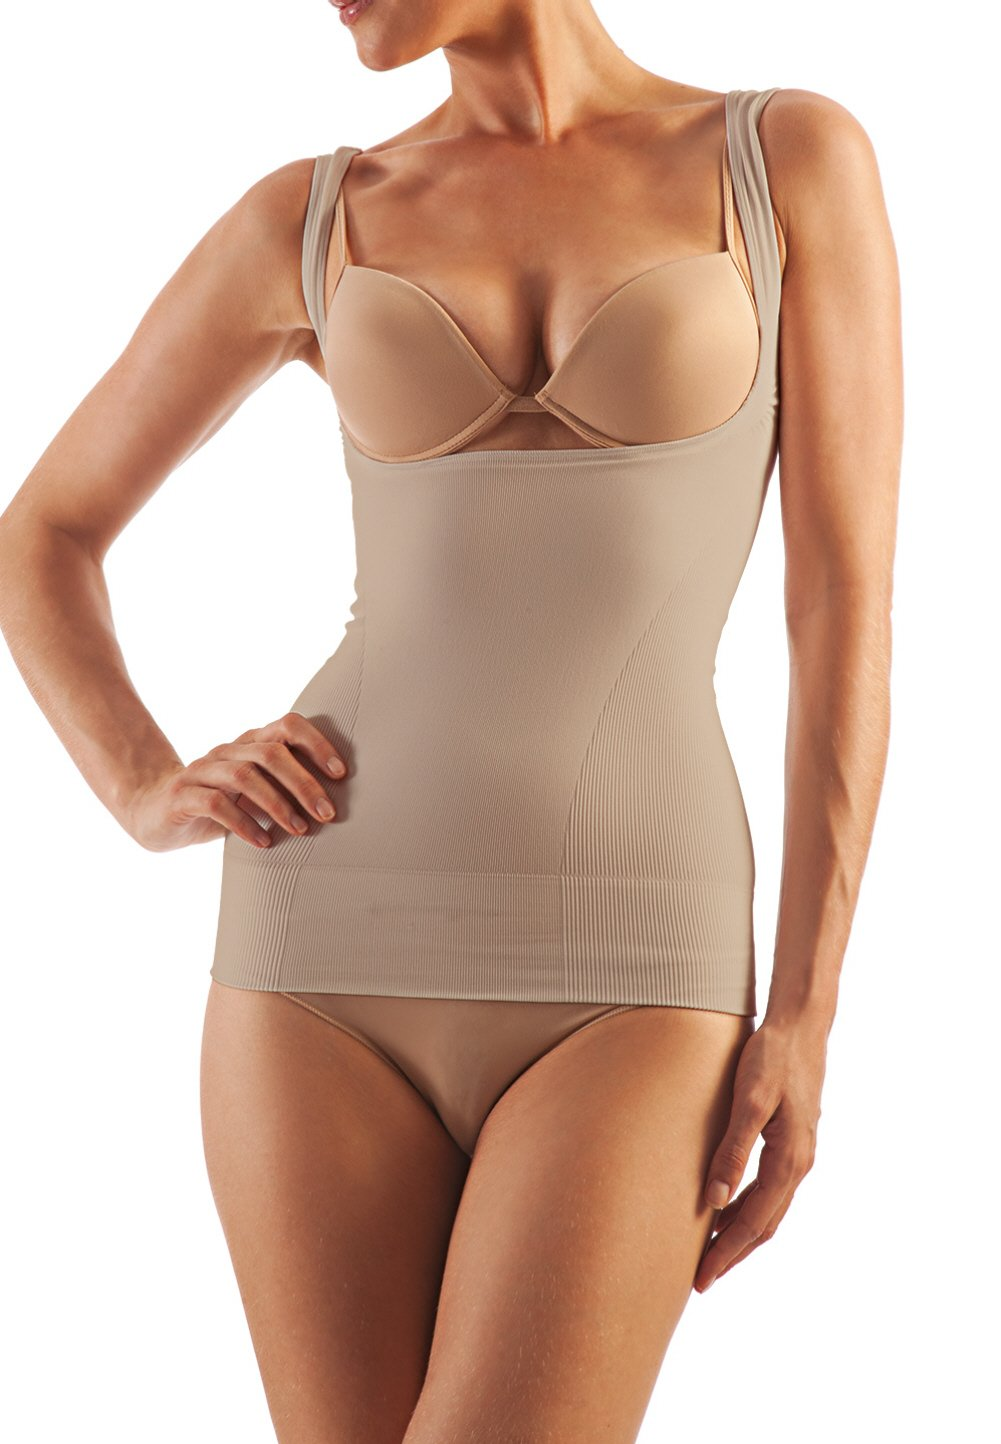 Alpha Medical Open Bust Compression Camisole. Microfiber Shape Wear. For Slimmer Look & After Cosmetic Surgery. Fine Italian Made Quality & Style. (Medium Beige)